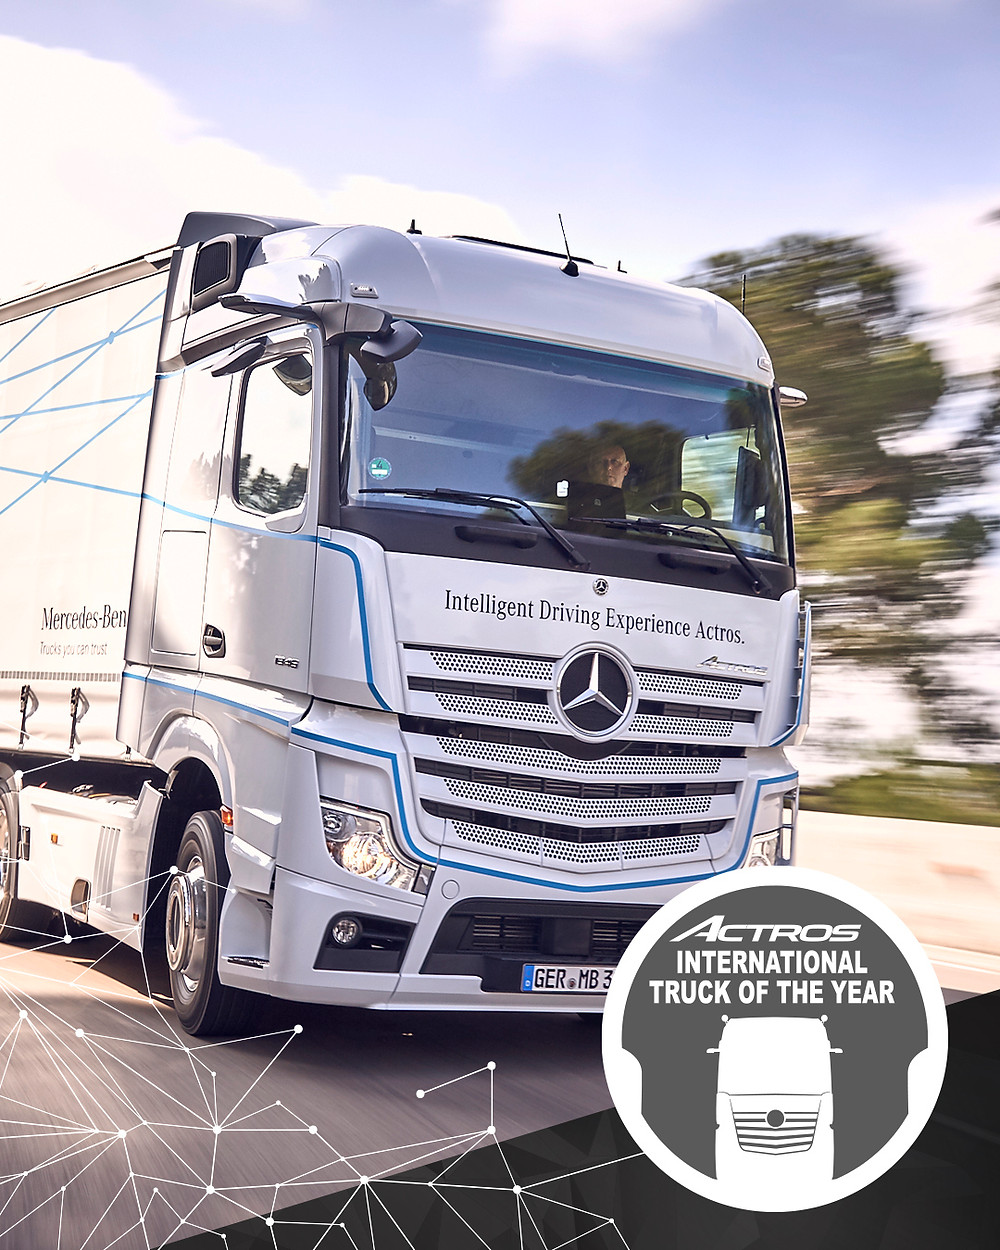 Neuer Actros ist Truck of the Year 2020